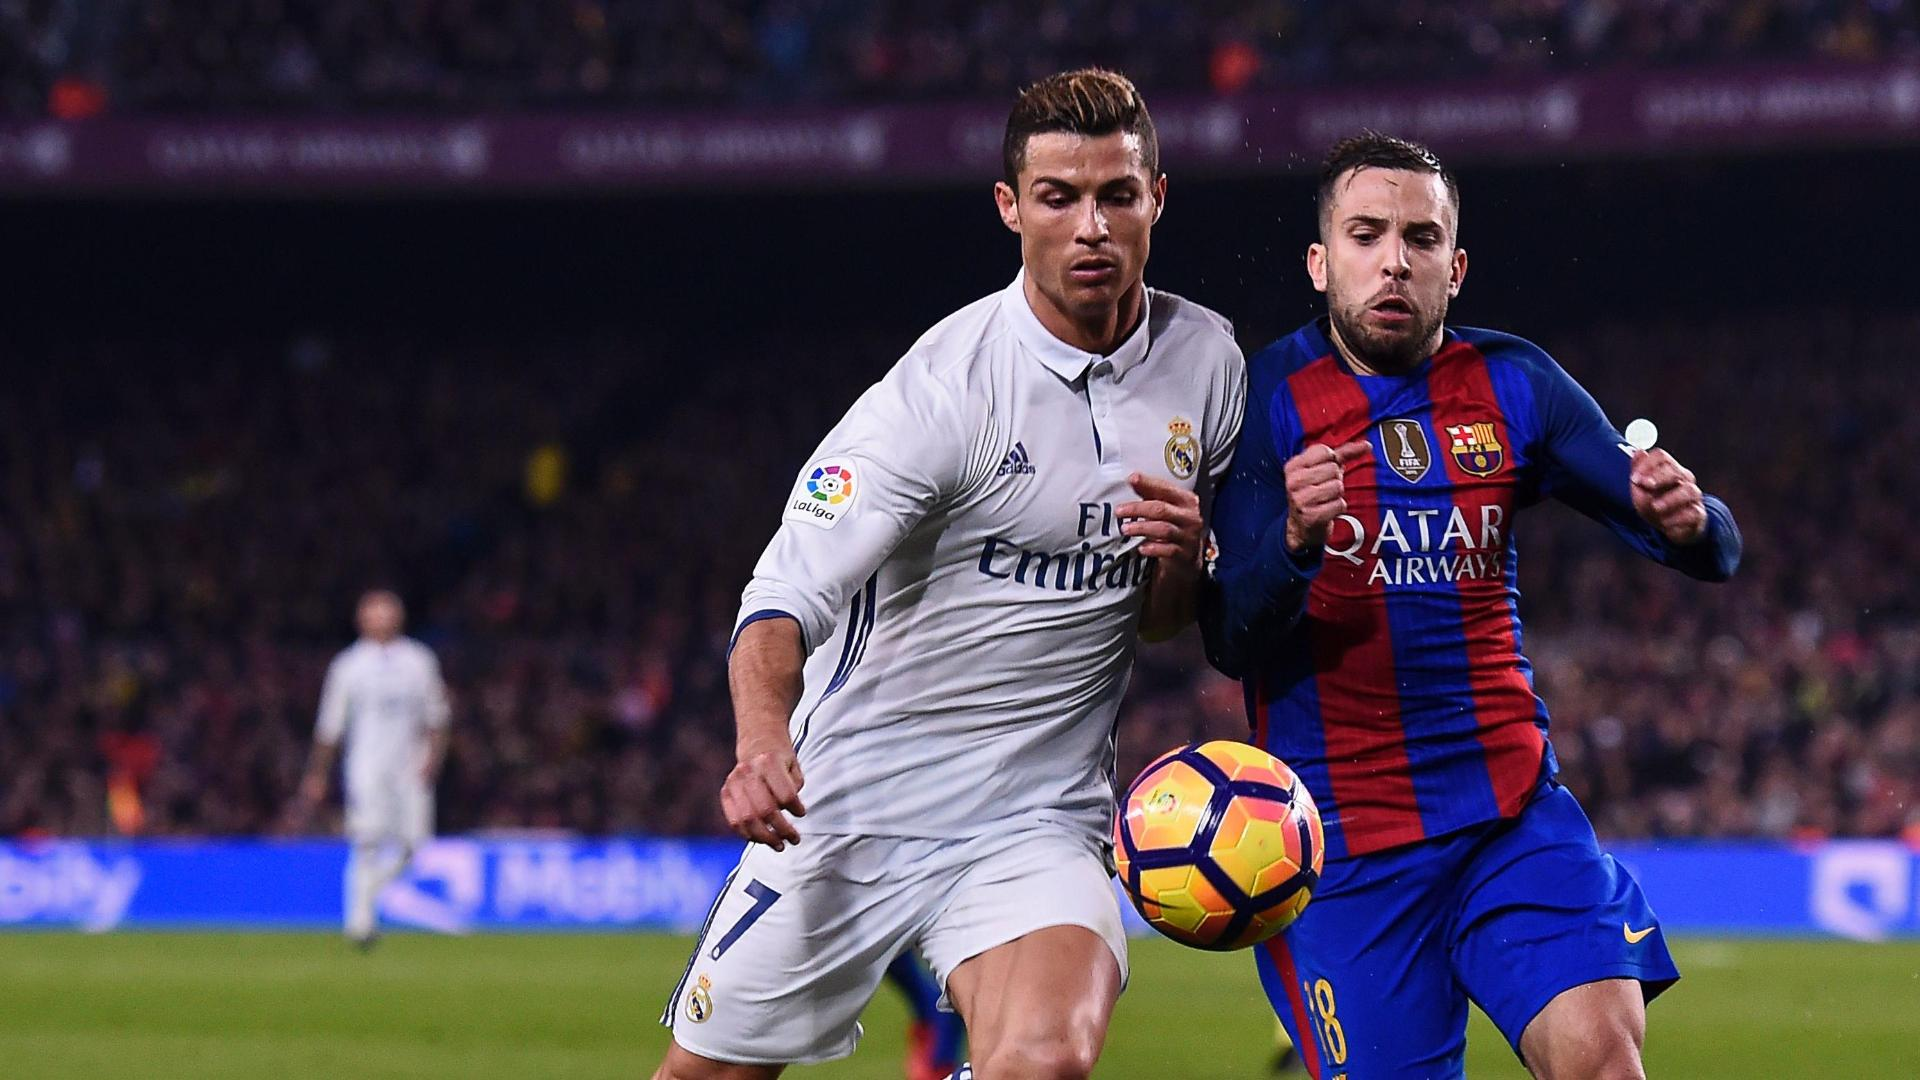 Sergio Ramos scores late equaliser as Real Madrid draw with Barcelona